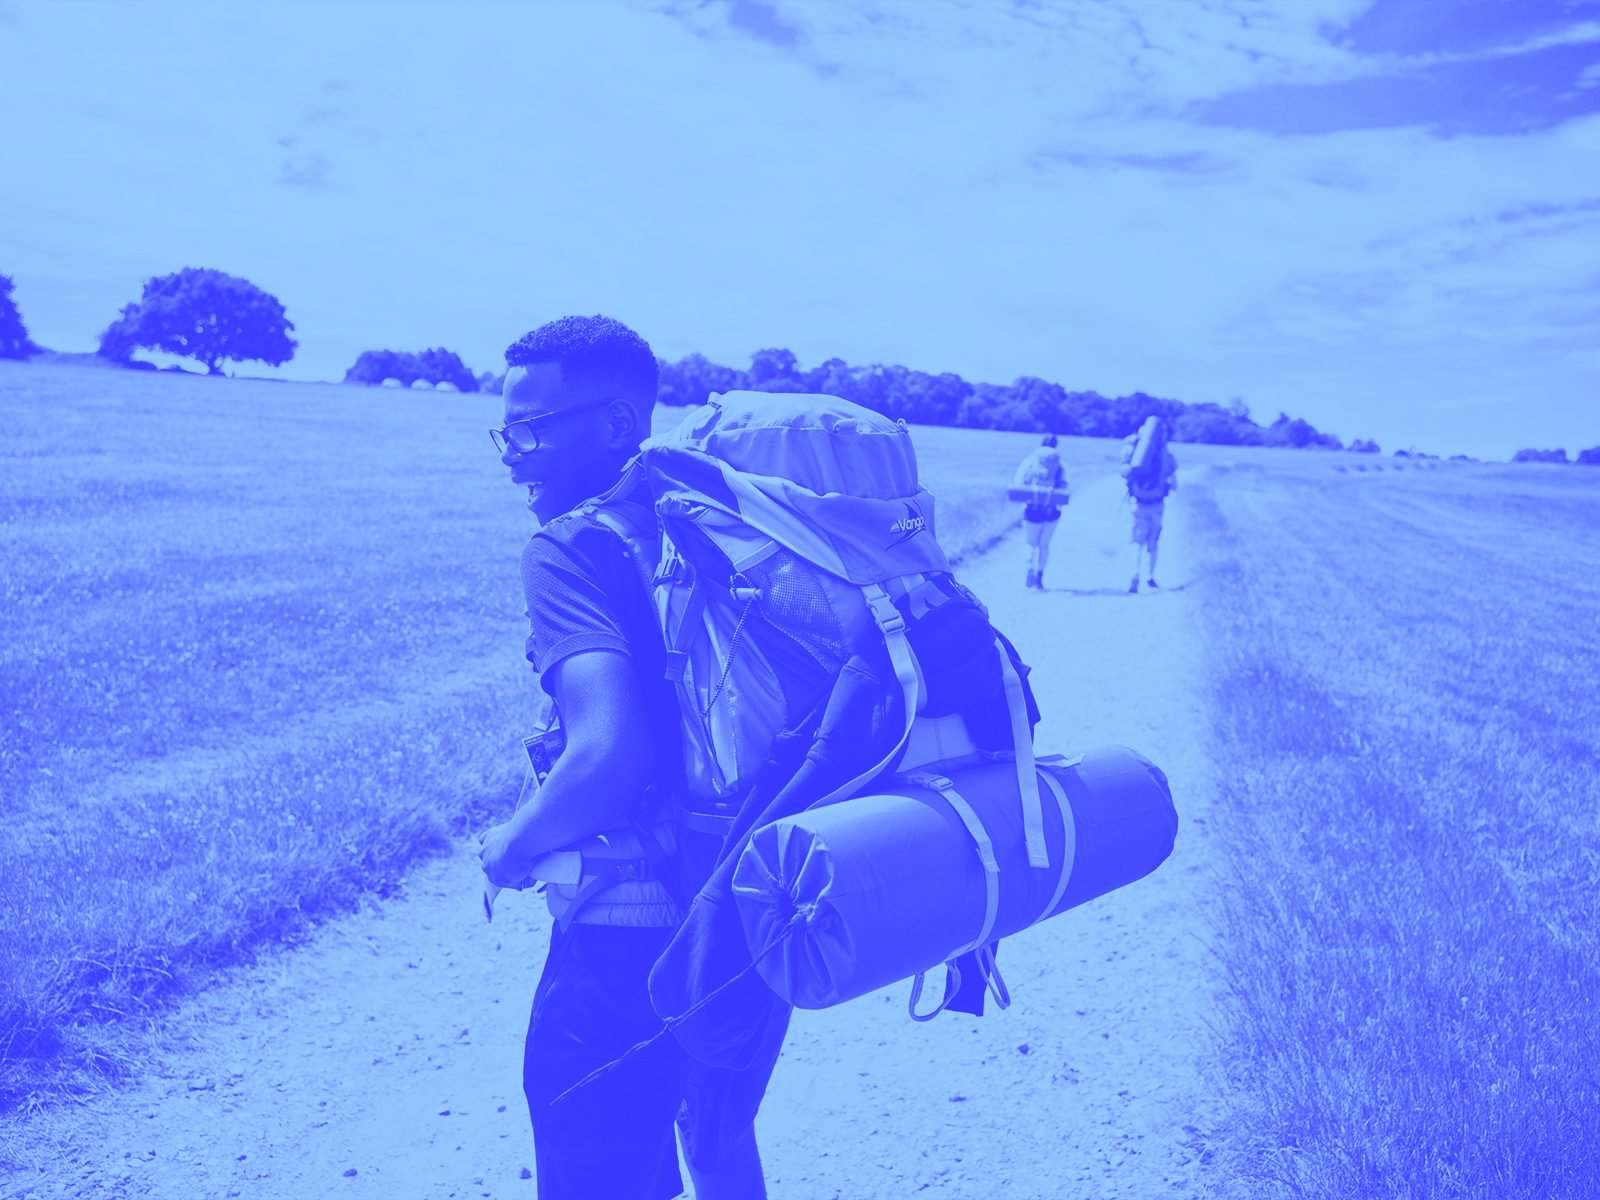 Young person on expedition wearing backpack - blue duotone